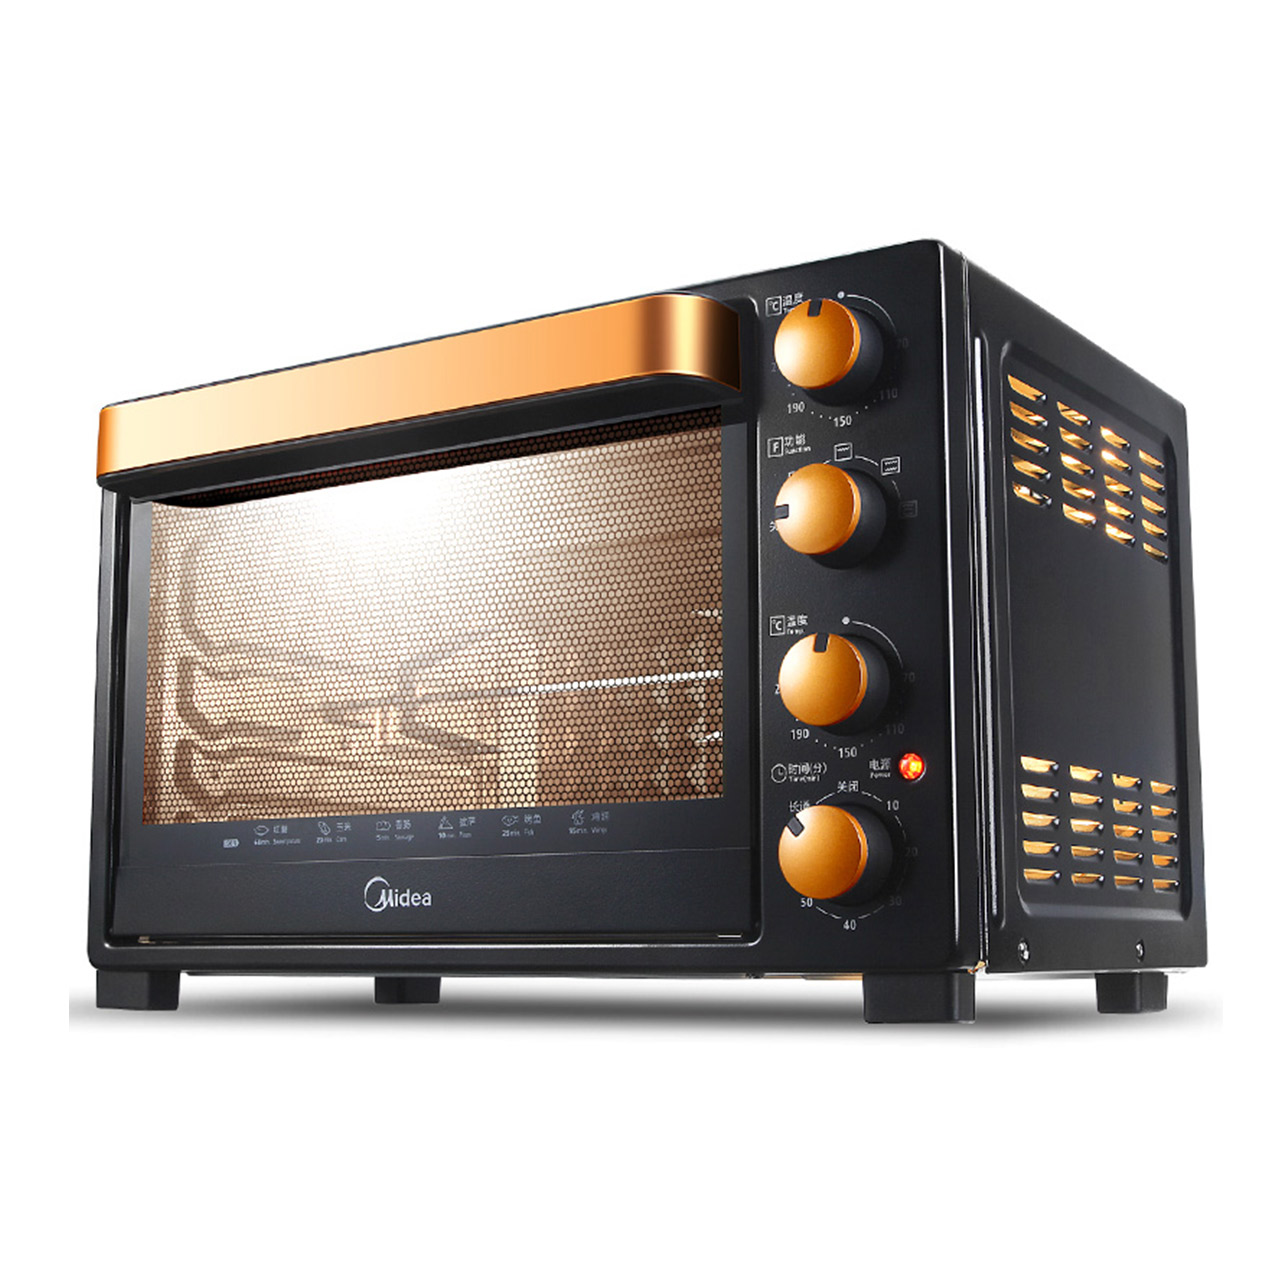 Midea 32L High Capacity Multi-function Electric Oven Home Baking Cake Toaster T3-L326B free shipping large electric oven home baking 38 liters capacity